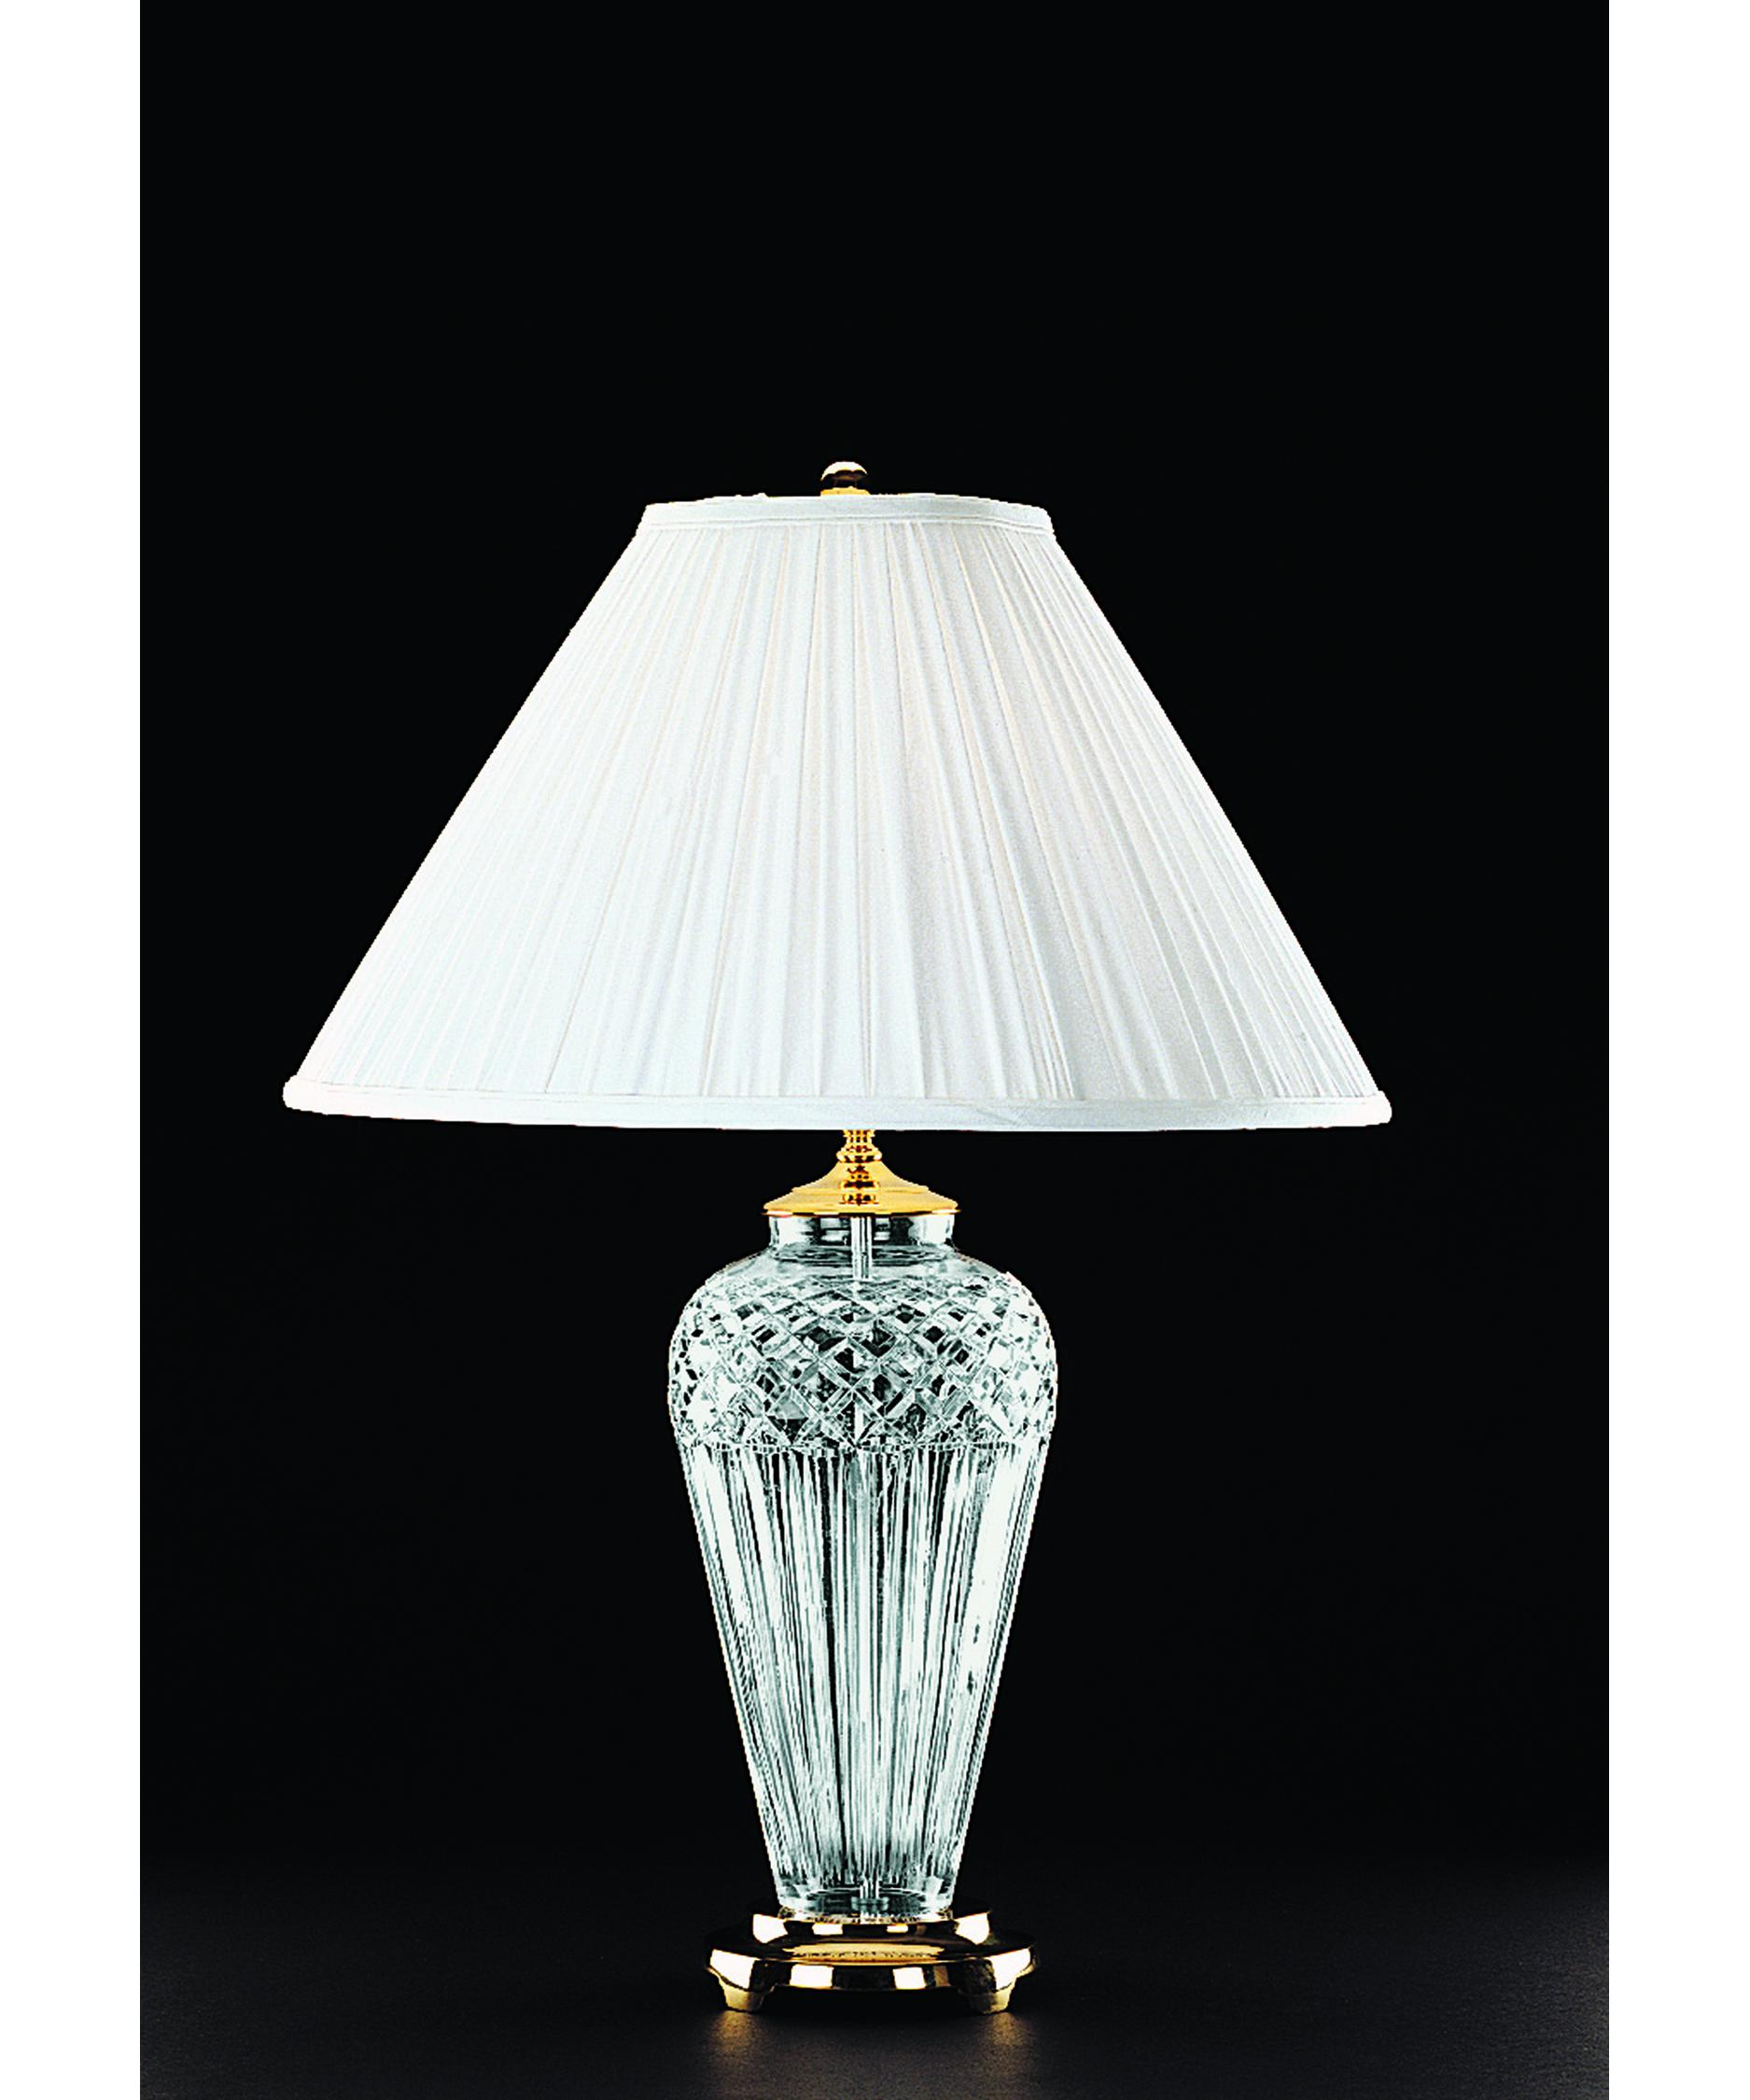 Waterford lighting 9919341310 belline 29 inch table lamp for 10 inch table lamps